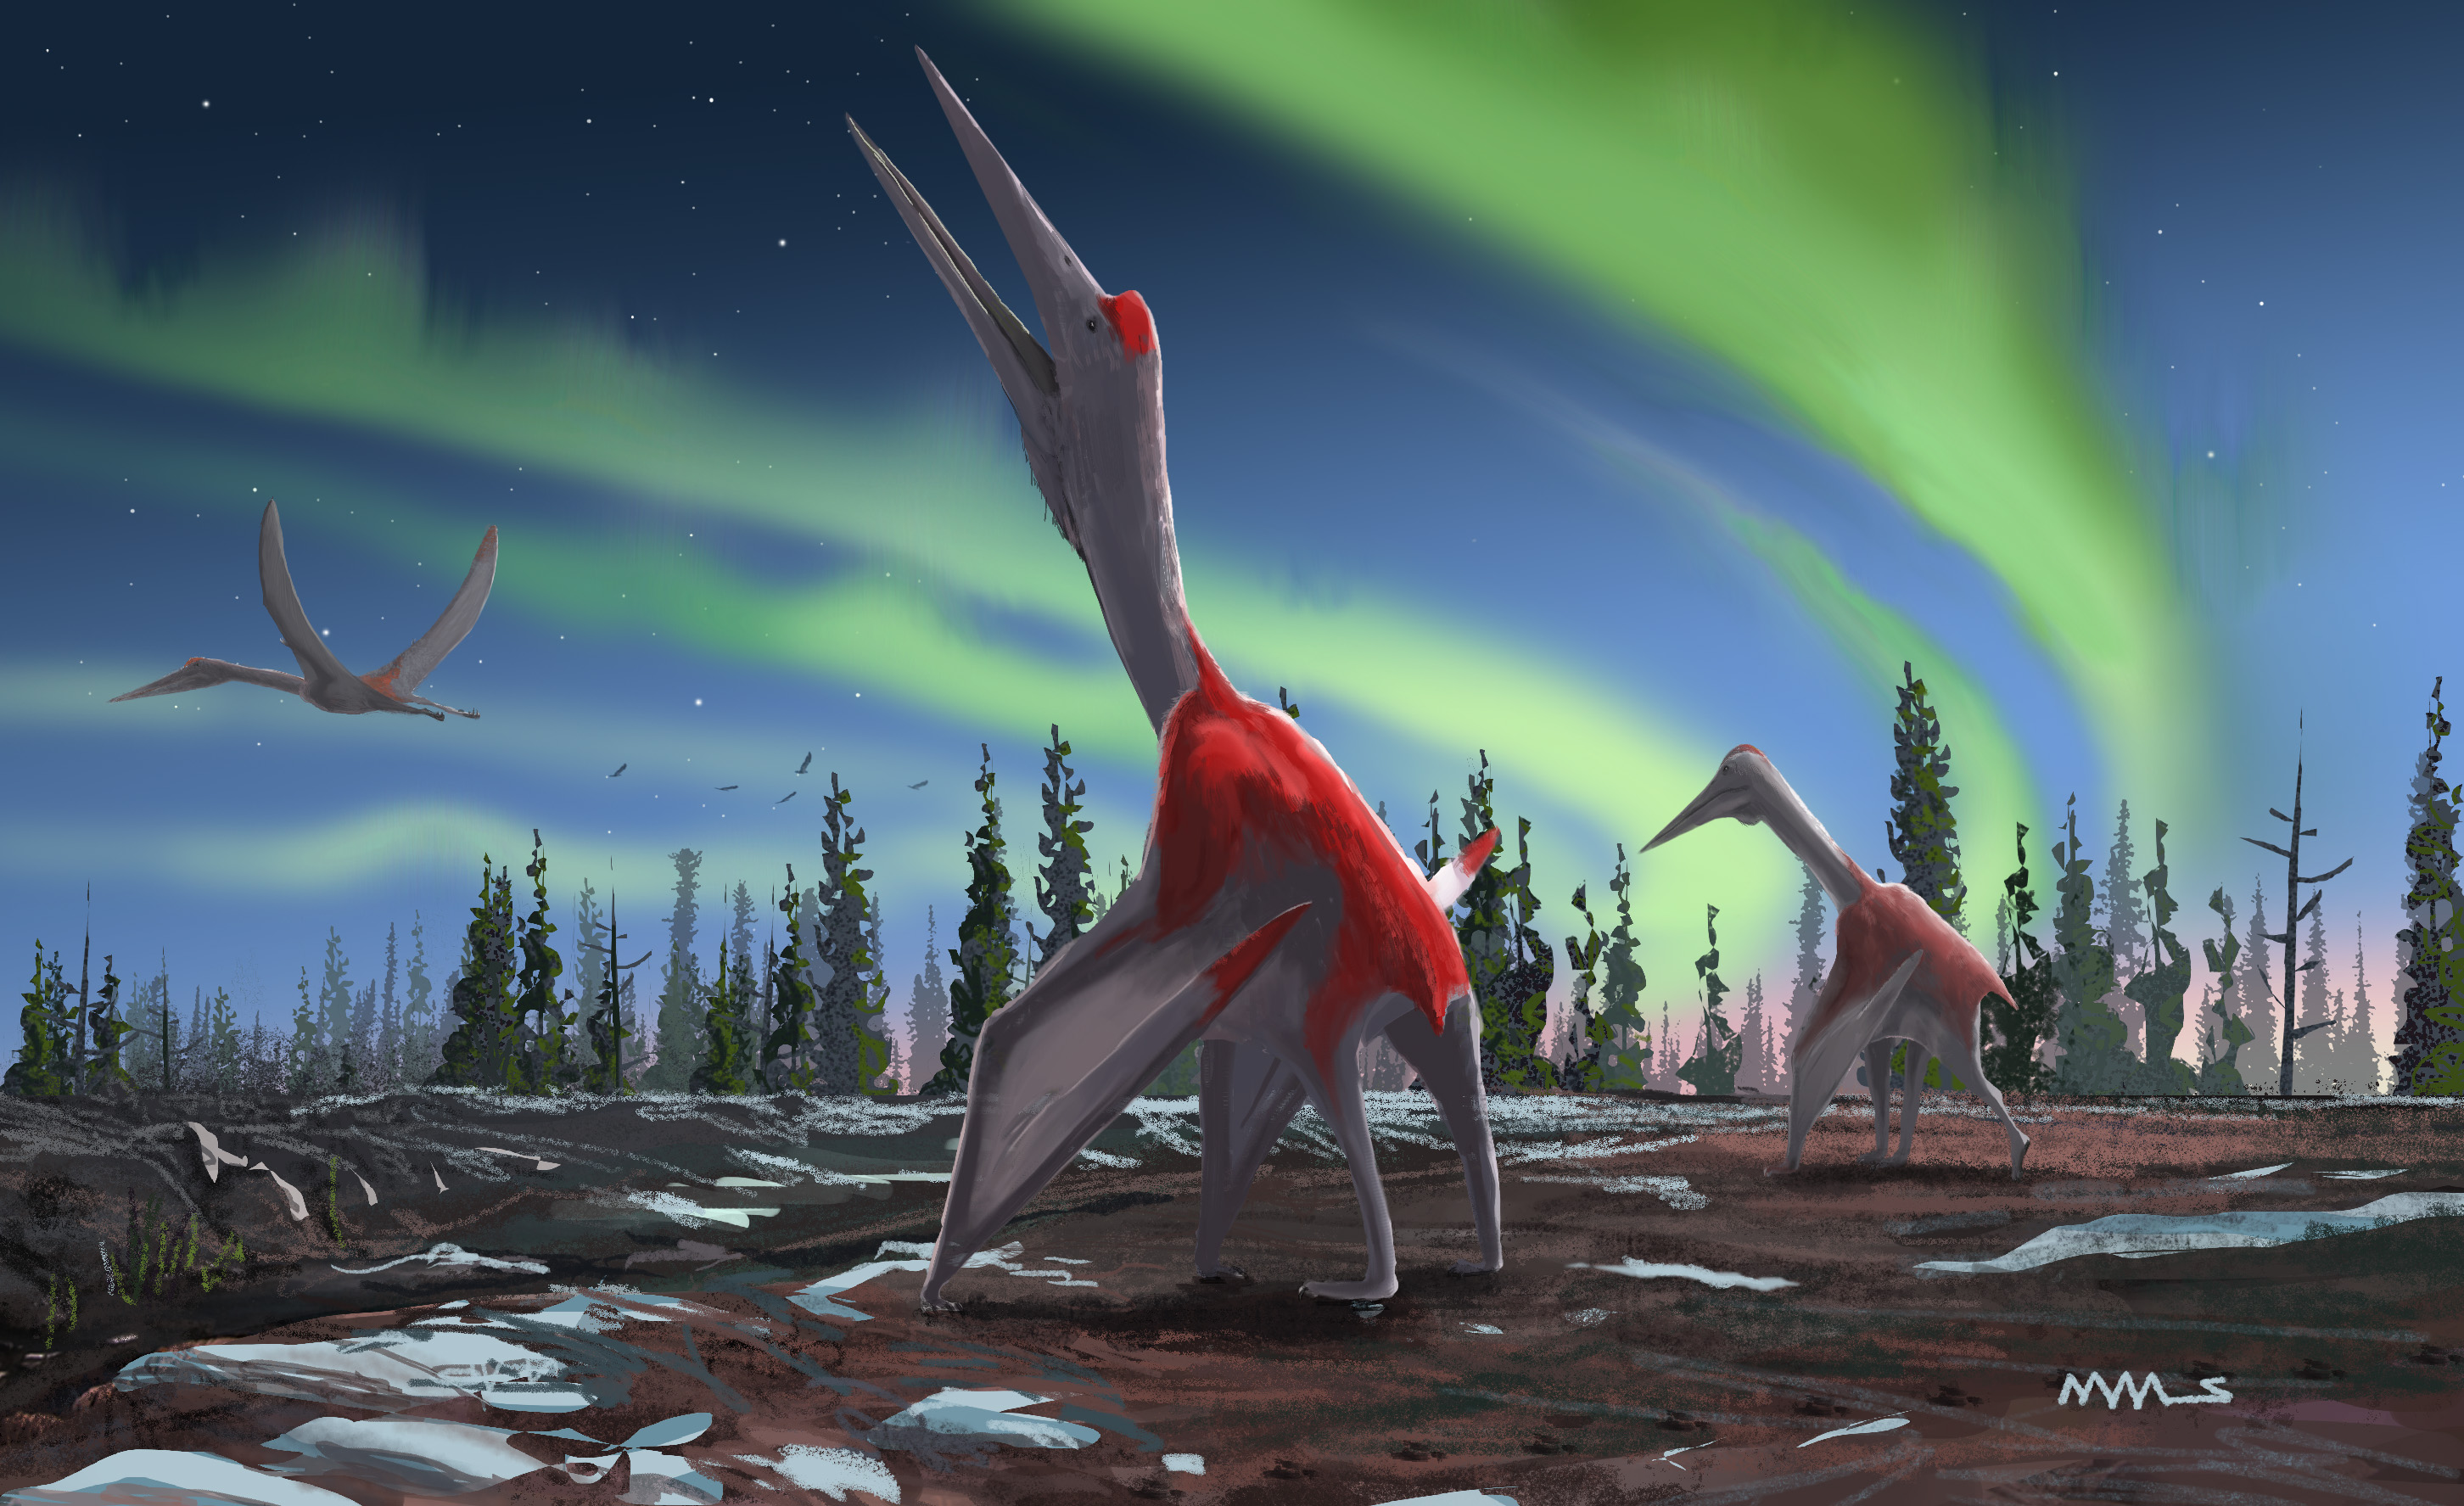 'Frozen dragon of the north wind': Species of pterosaur flew over North America 77 million years ago, scientists say - The Washington Post